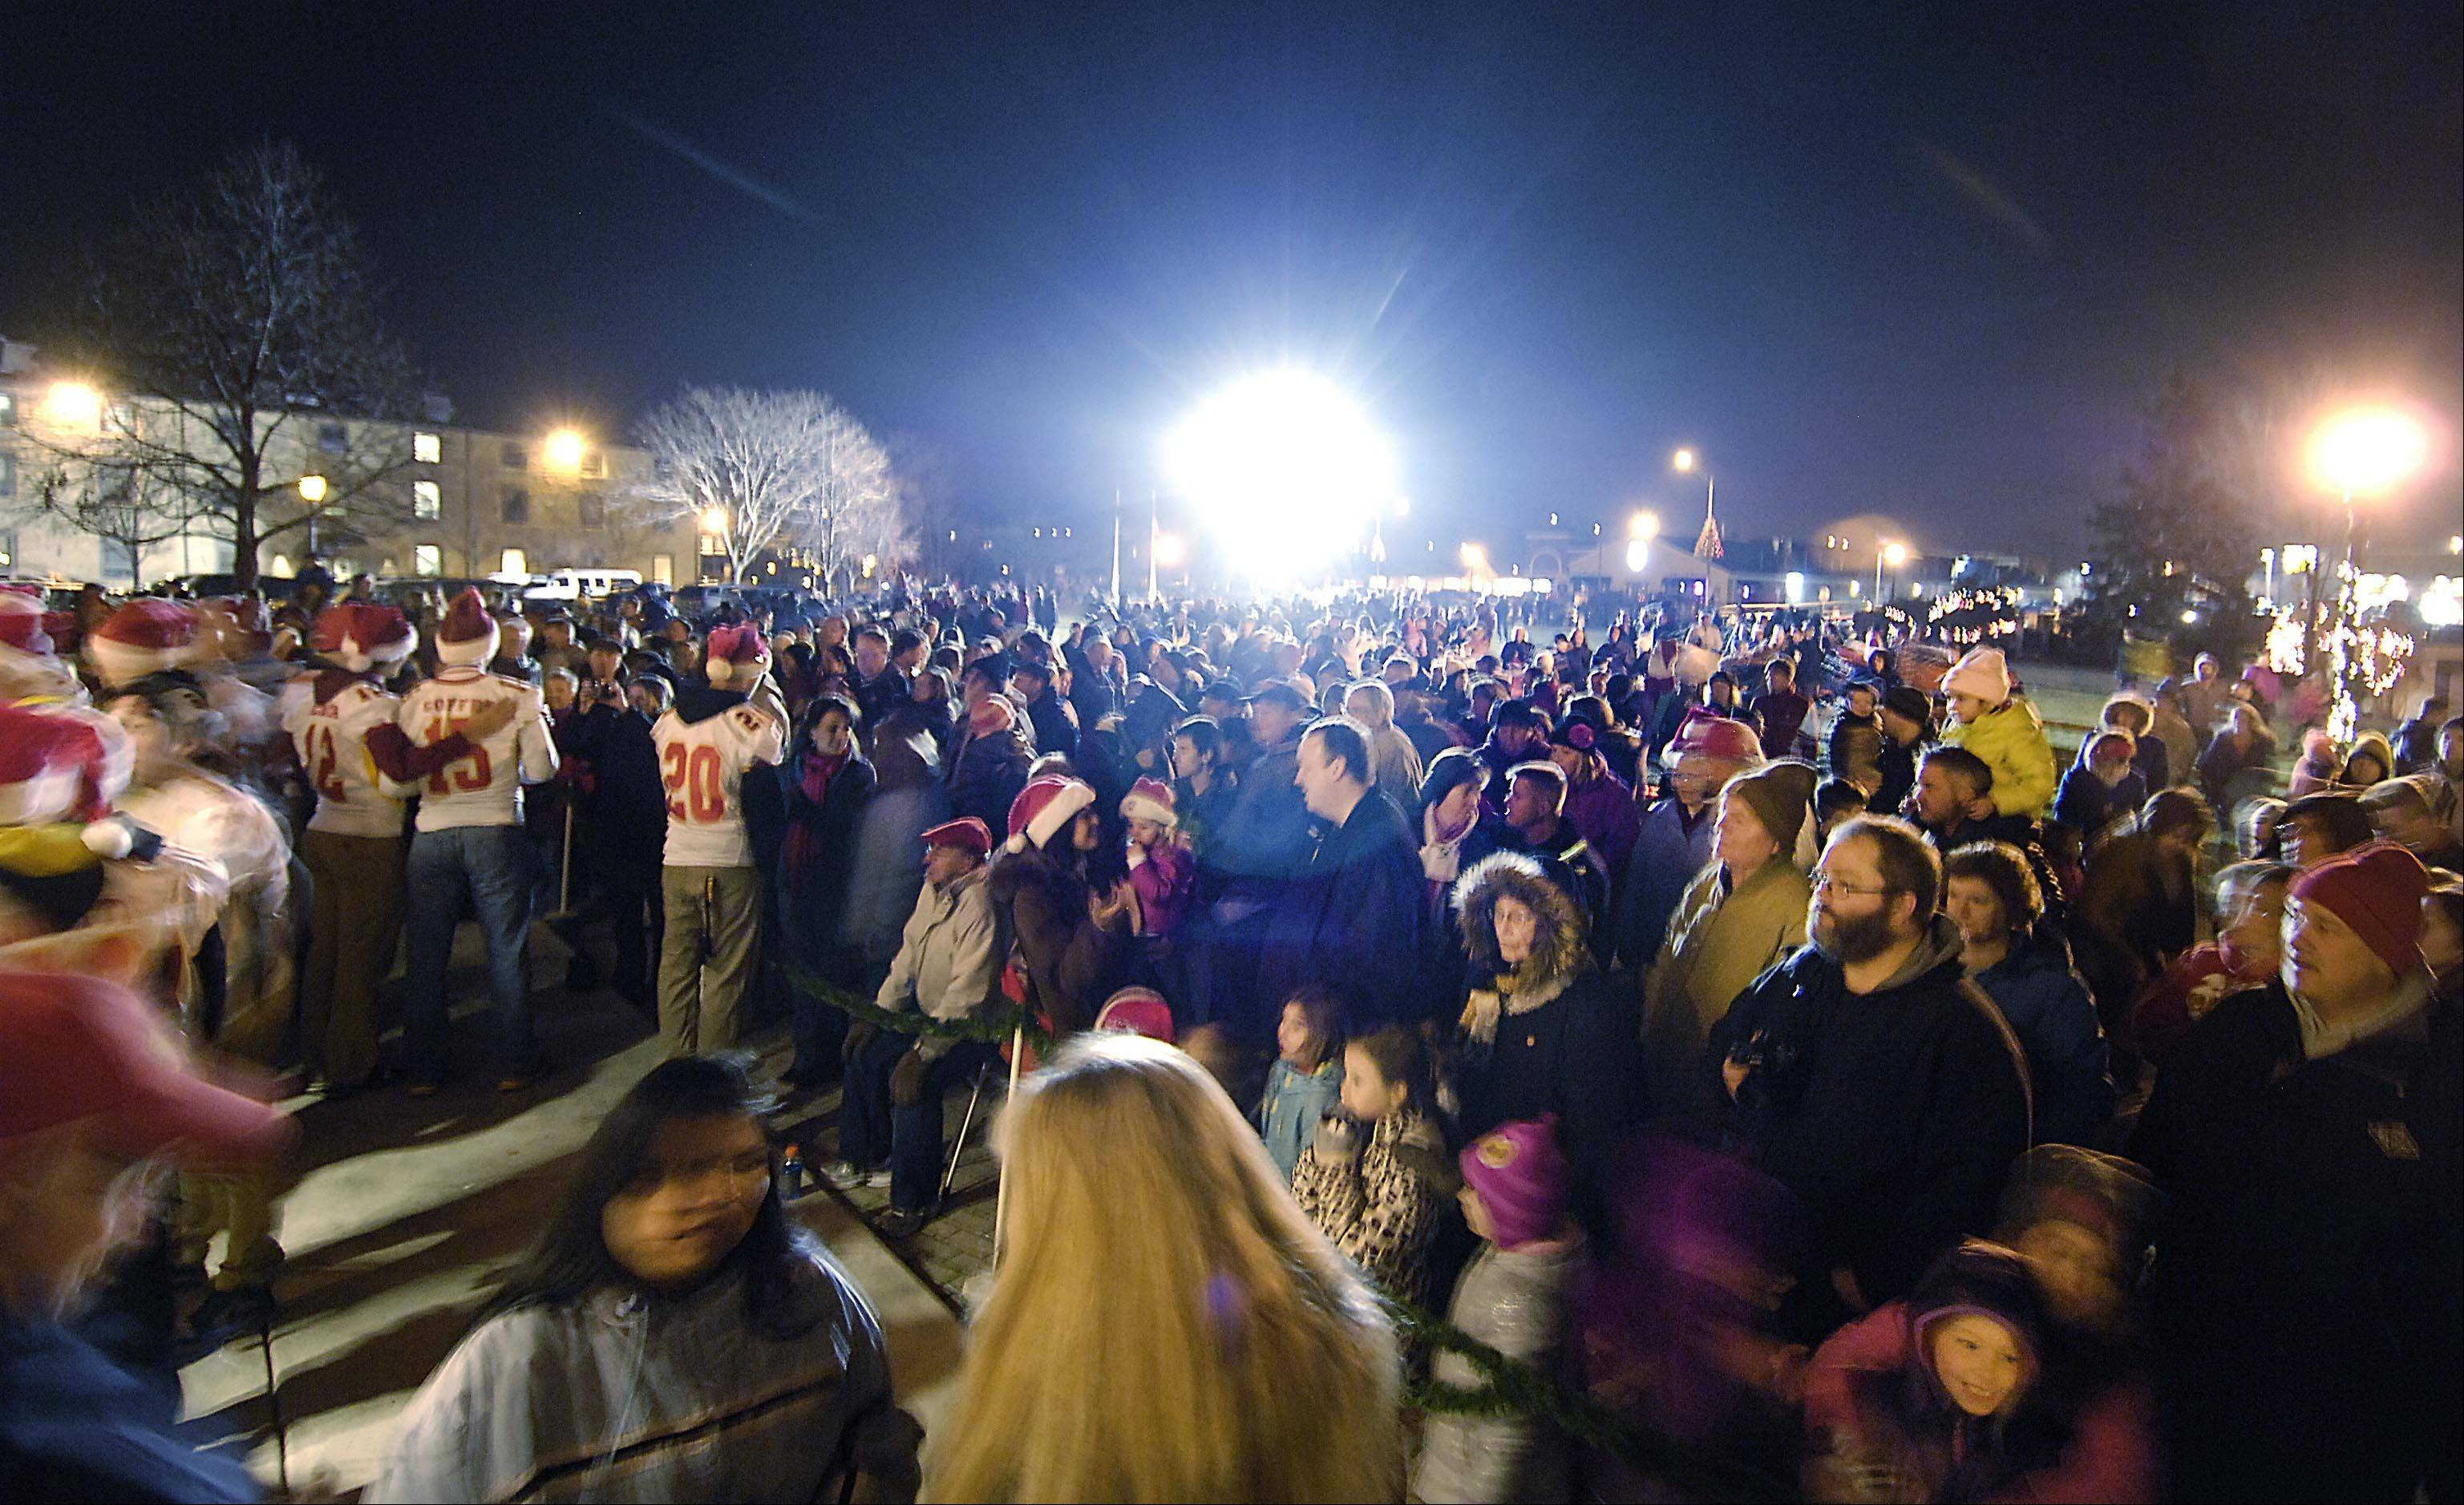 Thousands gather Dec. 1 at the Celebration of Lights Festival on the Batavia Riverwalk to sing holiday songs with the Batavia Community Band. The band will be back on New Year's Eve as the city welcomes in the new year at 9 p.m. Tuesday, Dec. 31.